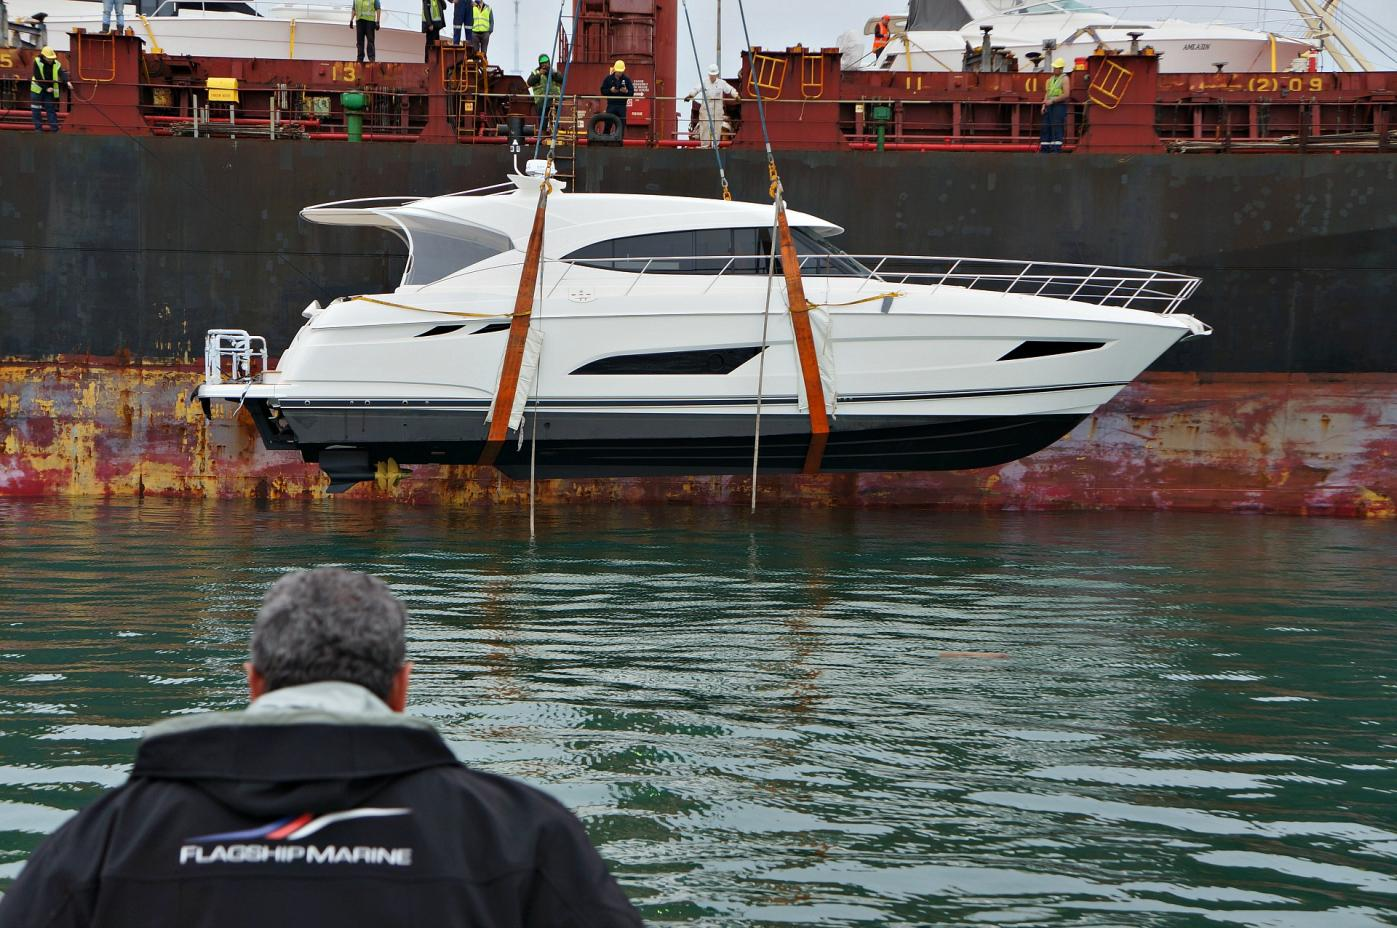 New Riviera 5400 Sports Yacht Arrives in Auckland